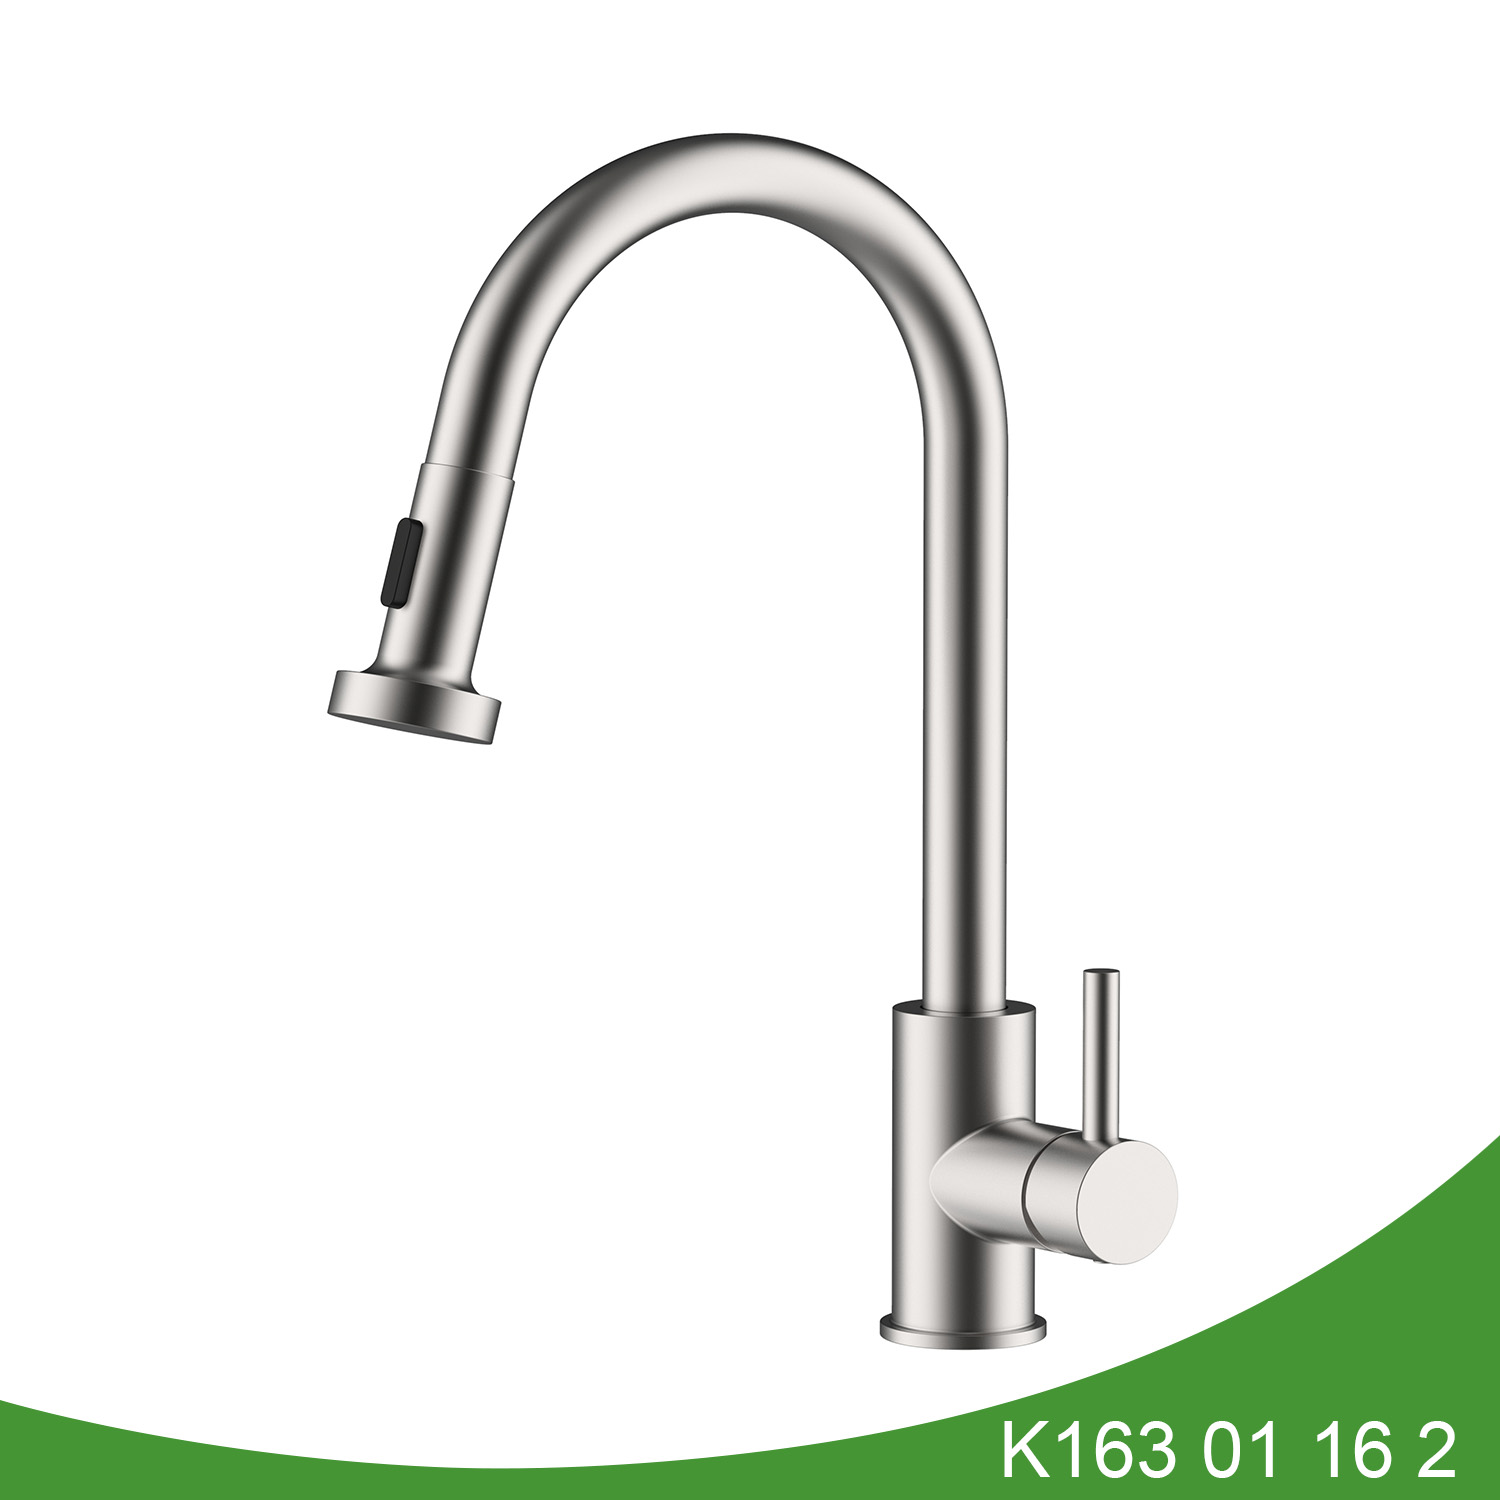 Stainless steel pull out kitchen tap K163 01 16 2